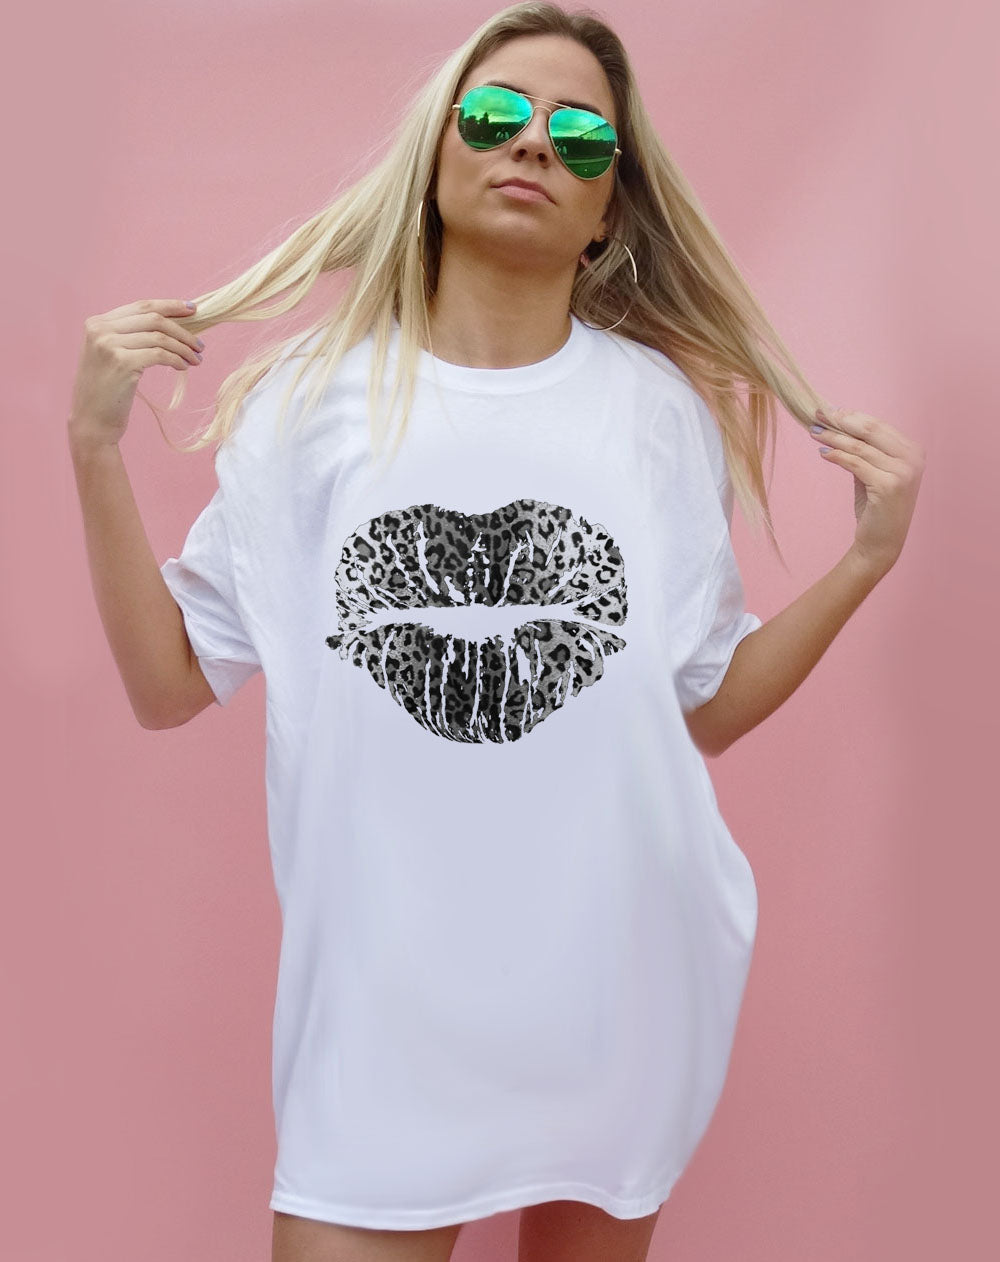 Monochrome Leopard Lip Kiss Oversize Tshirt Dress